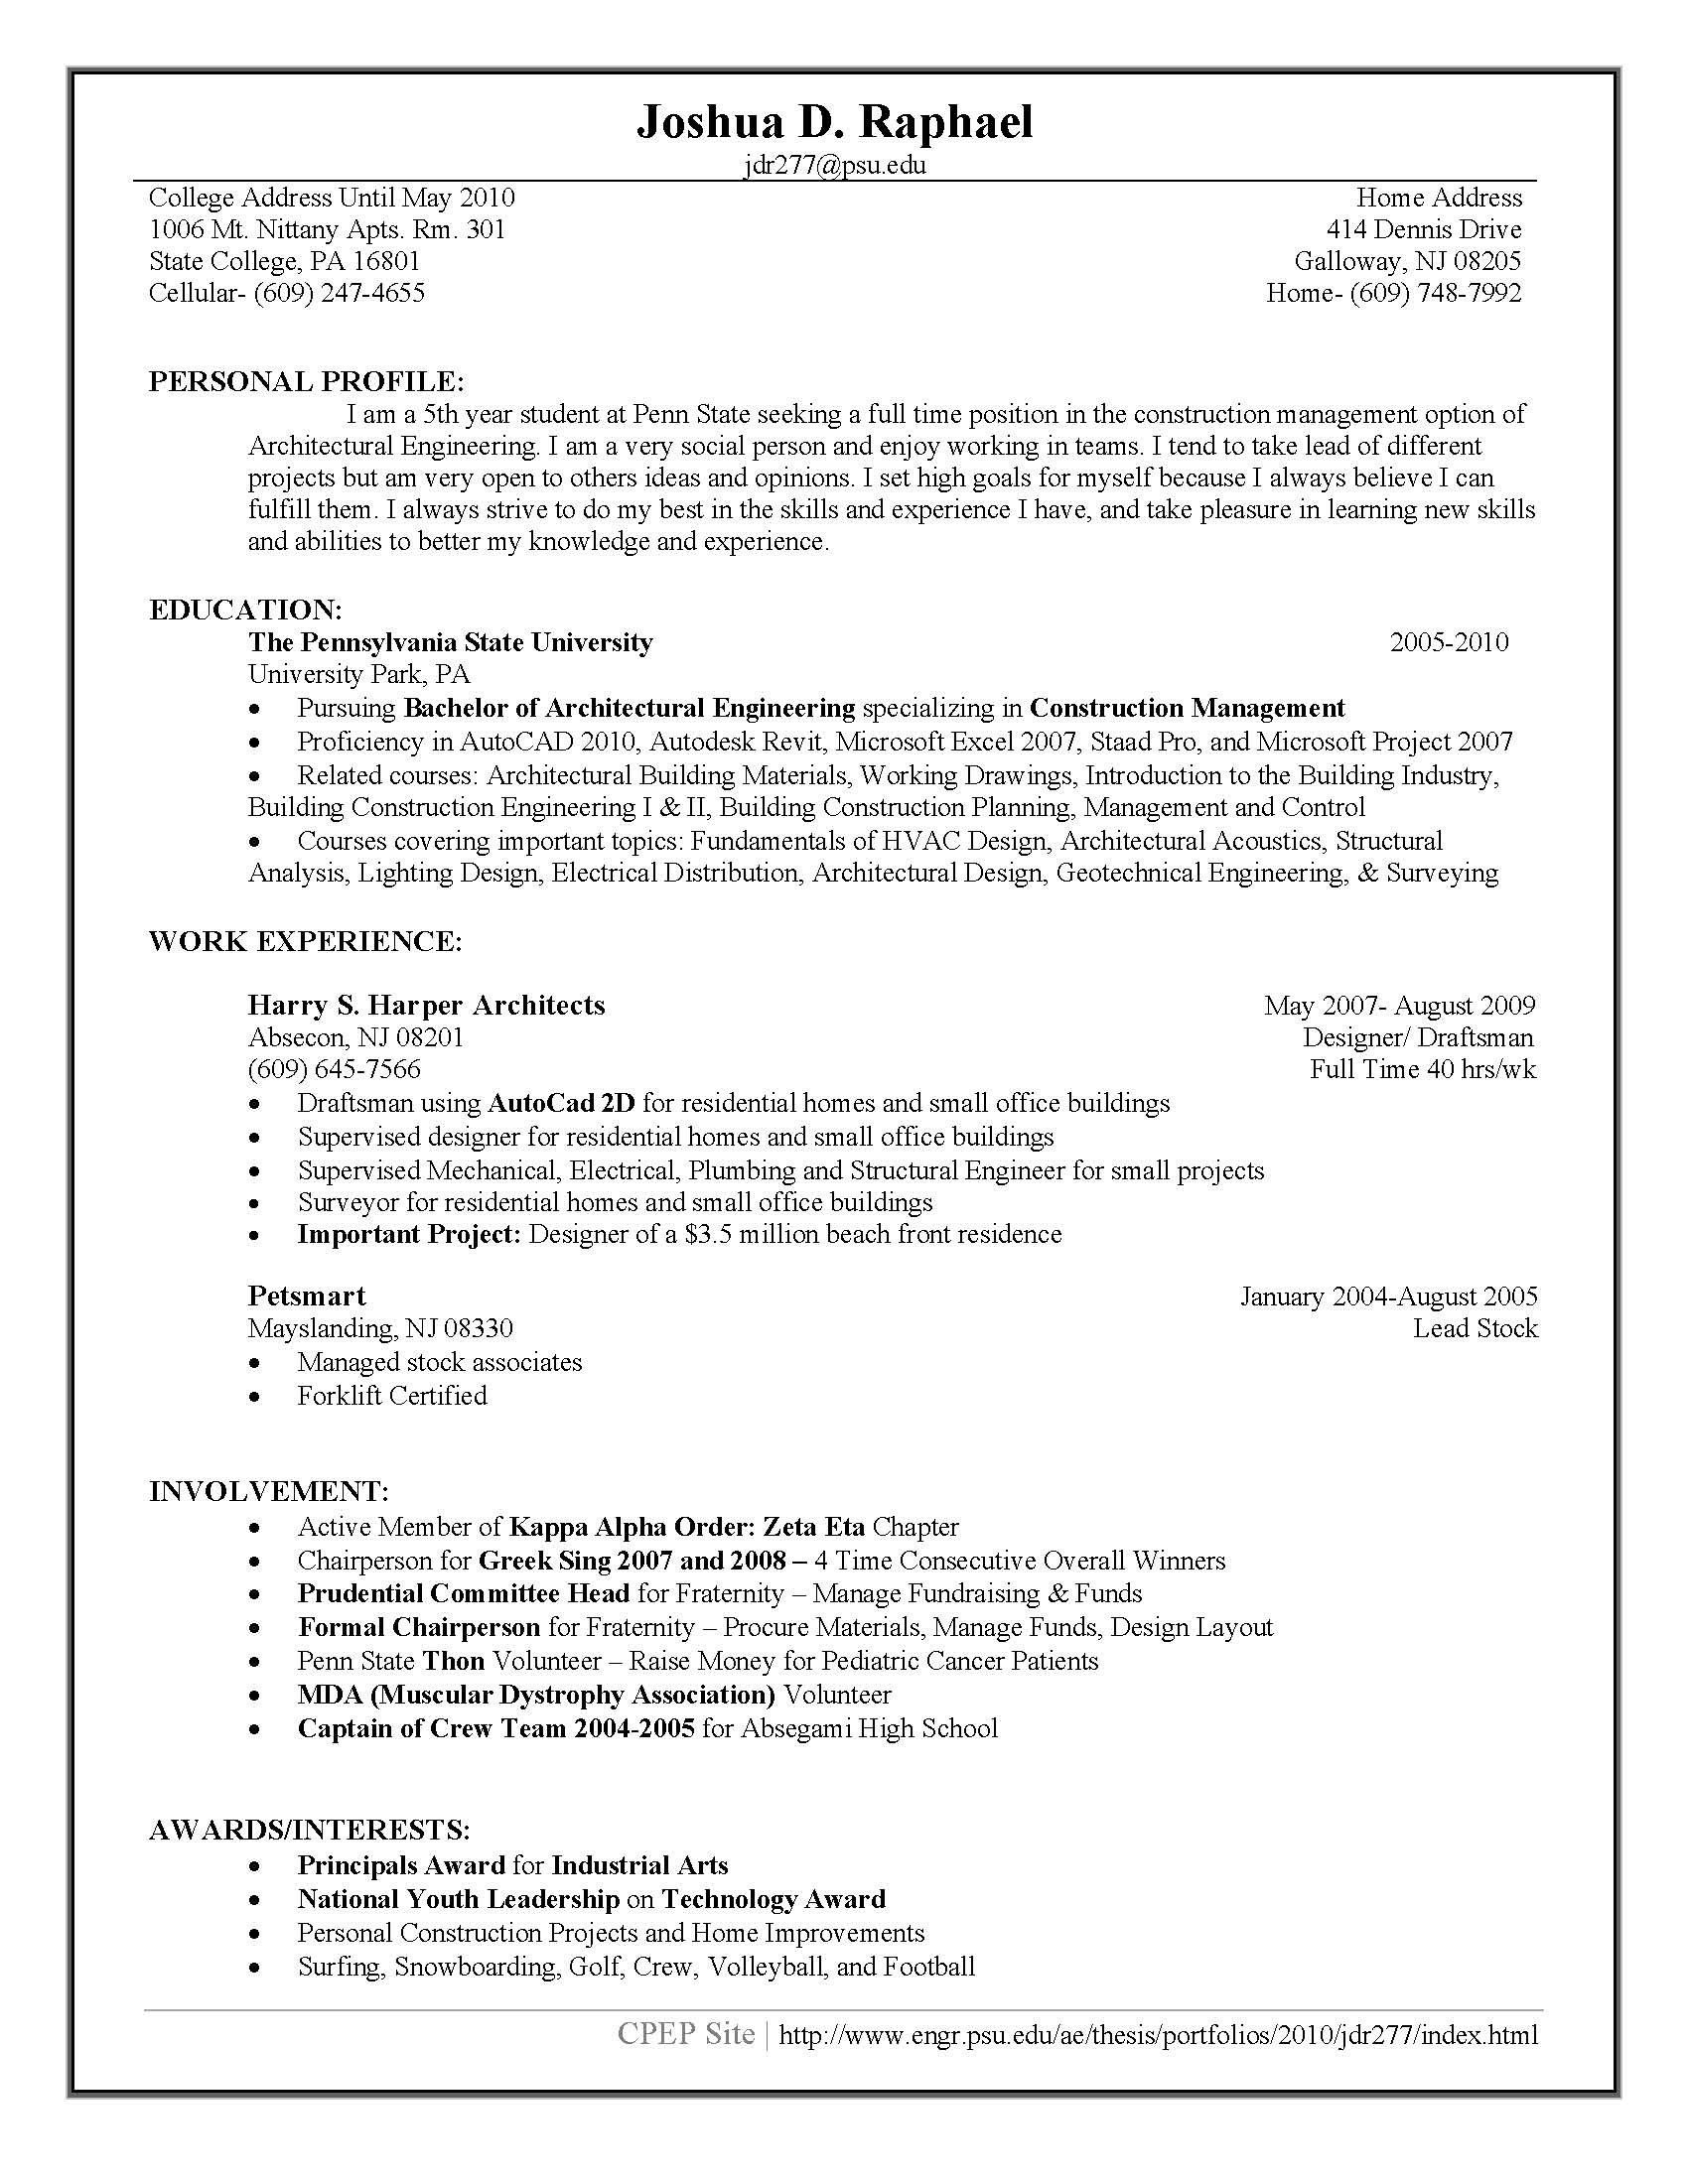 Resume Guideline. how resume 2017 looks like 16 tips guide. a ...